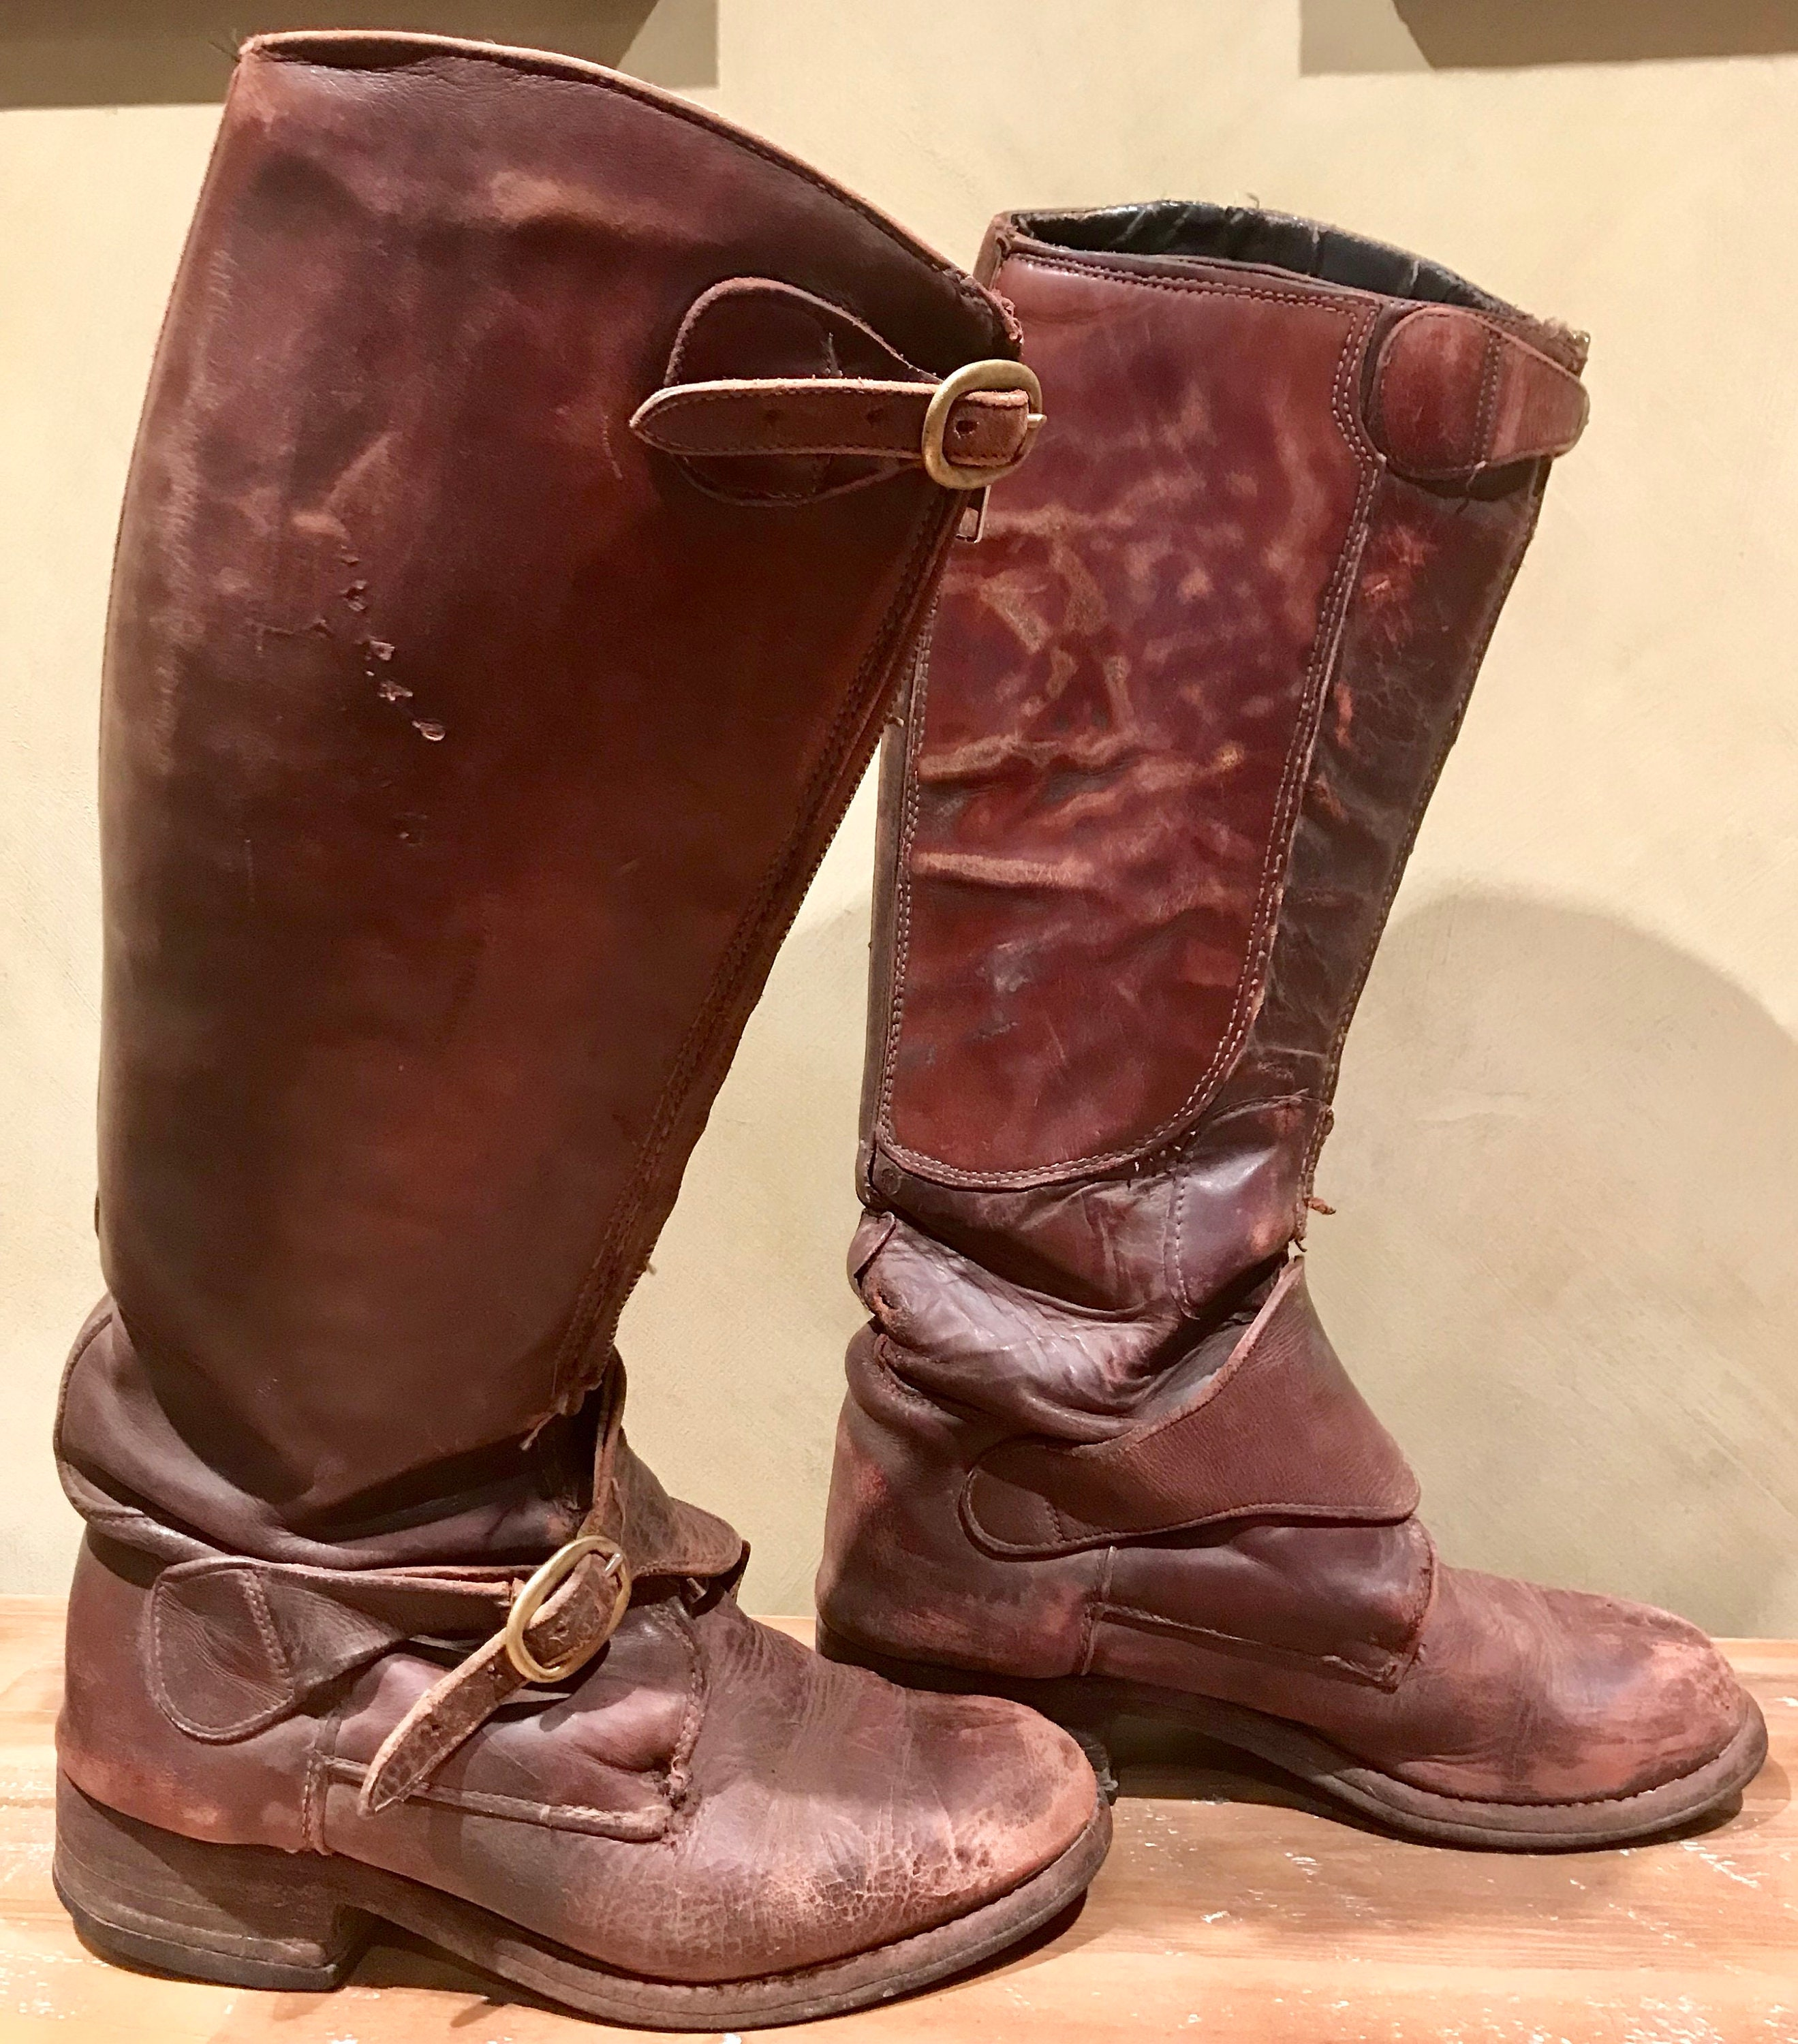 Australian Made Vintage Boho Riding Trashed Destroyed Distressed All Leather Riding Boho Boots 74c394